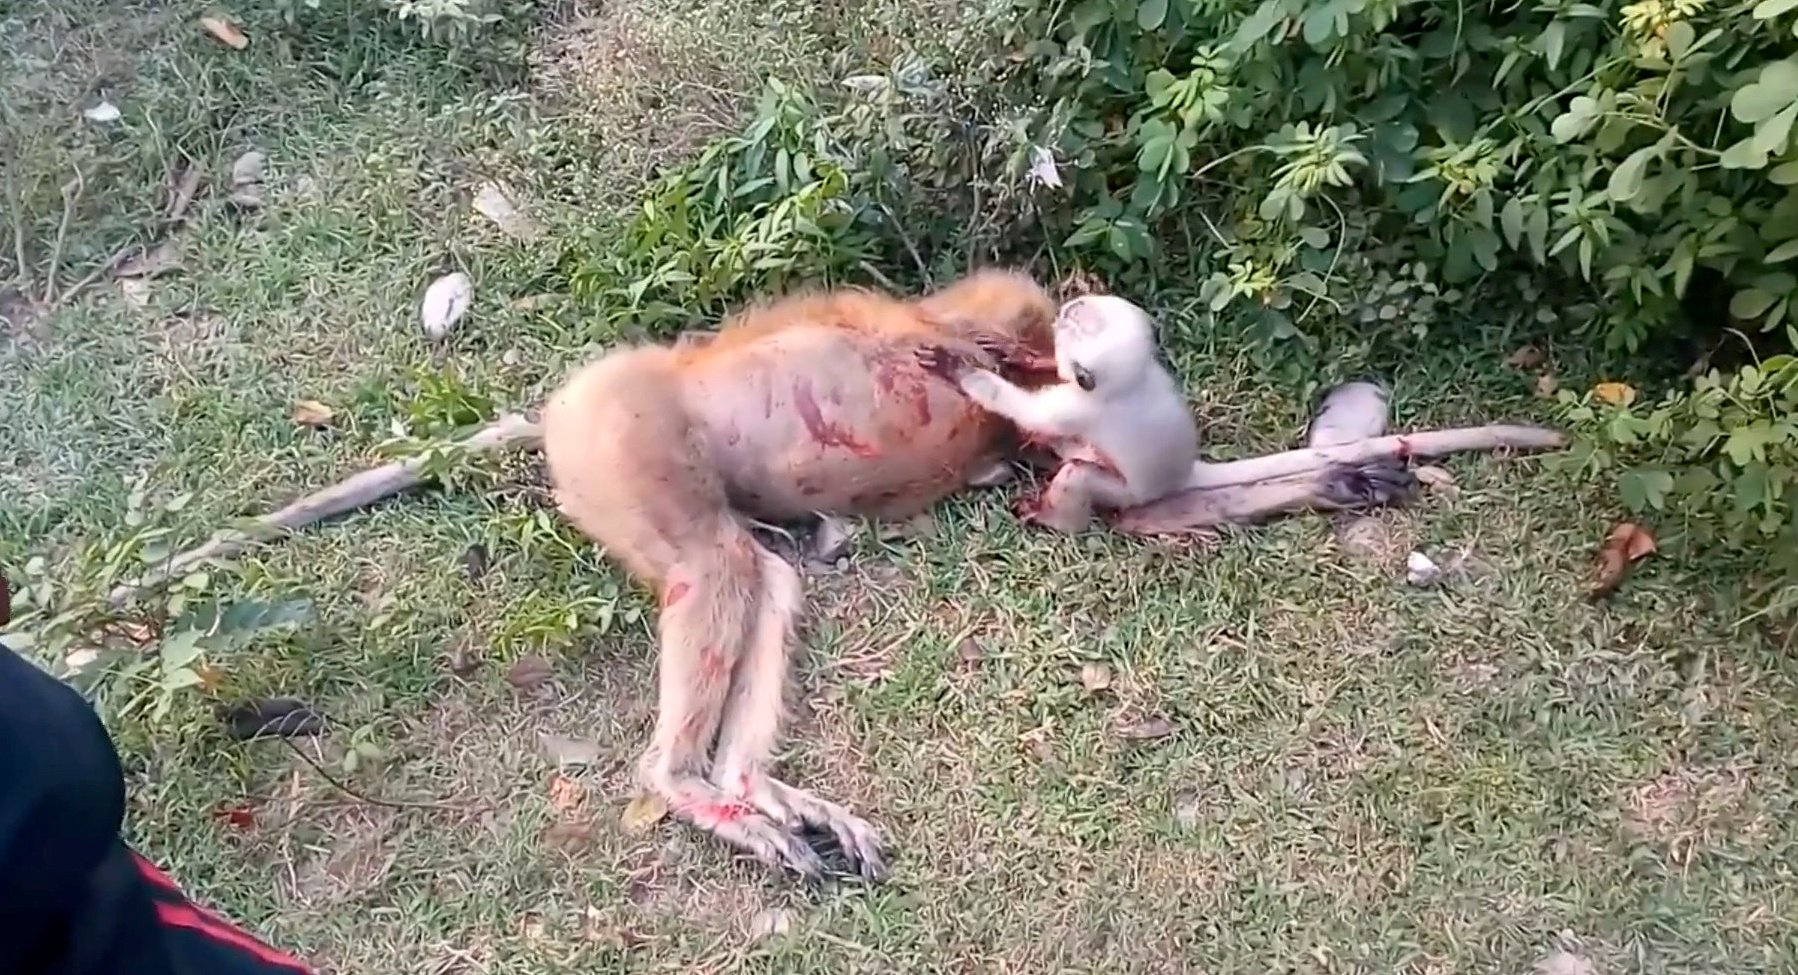 Video grab of the TRAGIC moment a baby monkey was found crying next to the body of its dead mother on the Bareily-Badayun road in Uttar Pradesh, India.See SWNS story SWOCmonkeyThis is the heartbreaking moment a tiny baby monkey was discovered crying over its dead mother's body.The adult monkey was knocked down while it was crossing the road and later the baby refused to leave its side.The inconsolable animal can be heard crying and screaming while hugging the mum to wake it up, on the Bareily-Badayun road in Uttar Pradesh, India.In a video, a man can be heard saying: ?The mother is dead, what to do with the baby?.